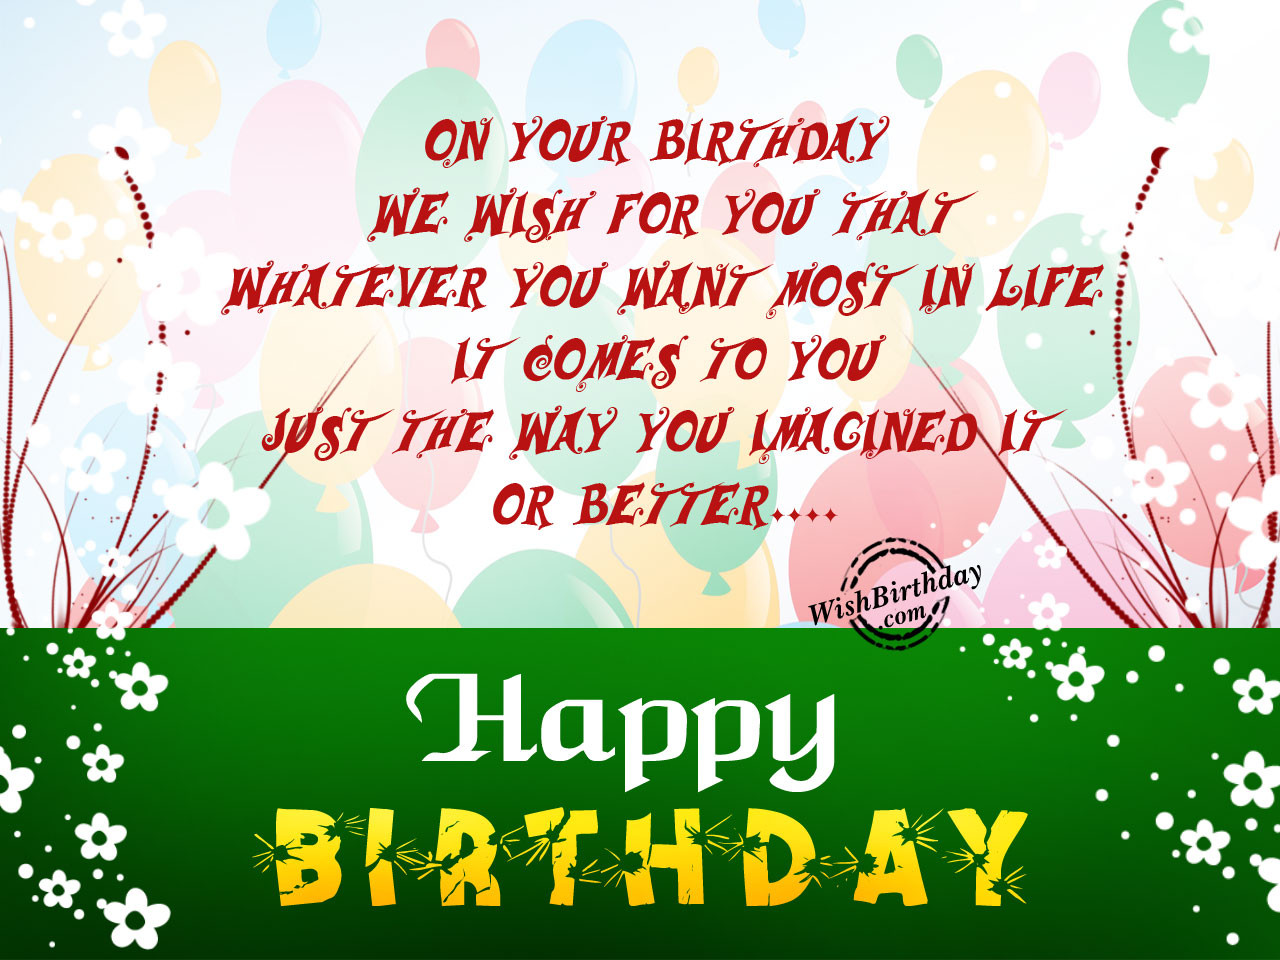 Best ideas about Birthday Wish Pic . Save or Pin Birthday Wishes With Balloons Birthday Now.